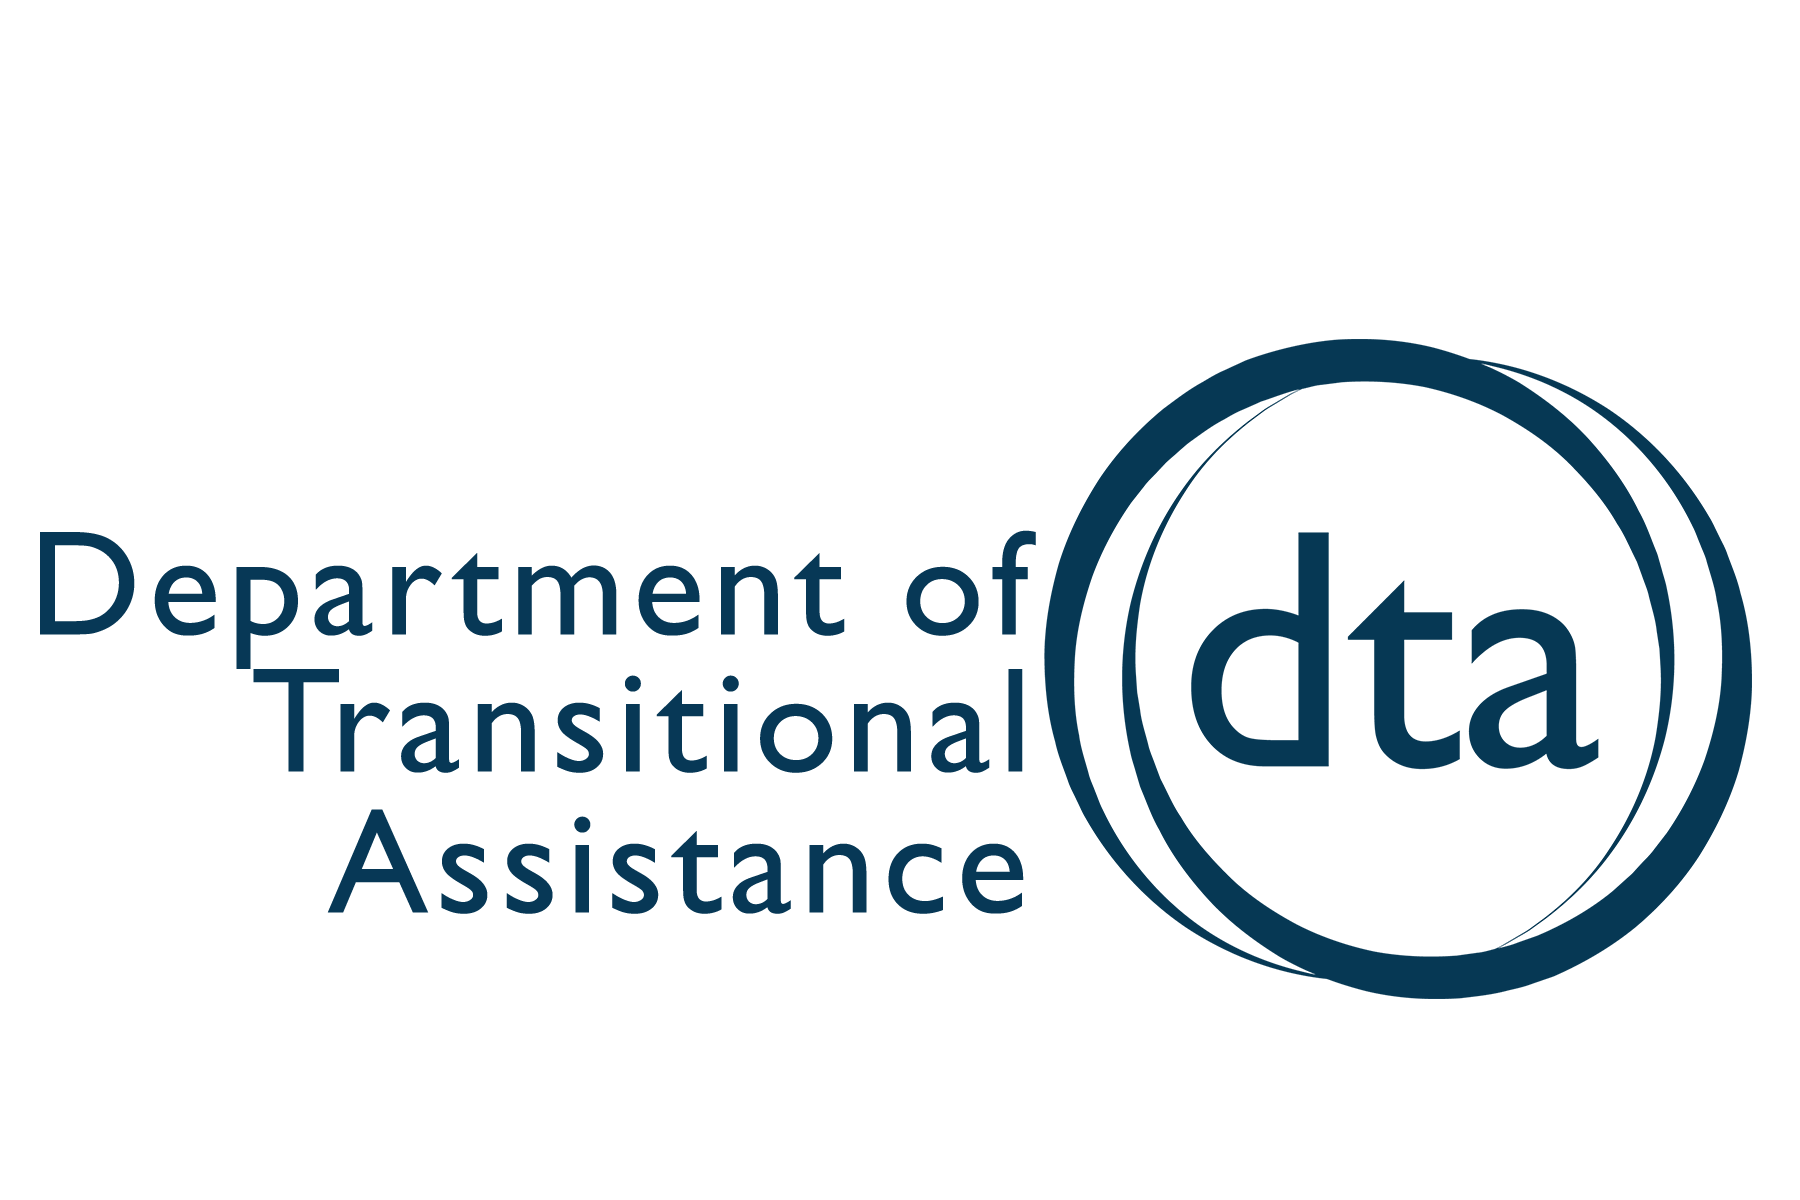 Department of Transitional Assistance